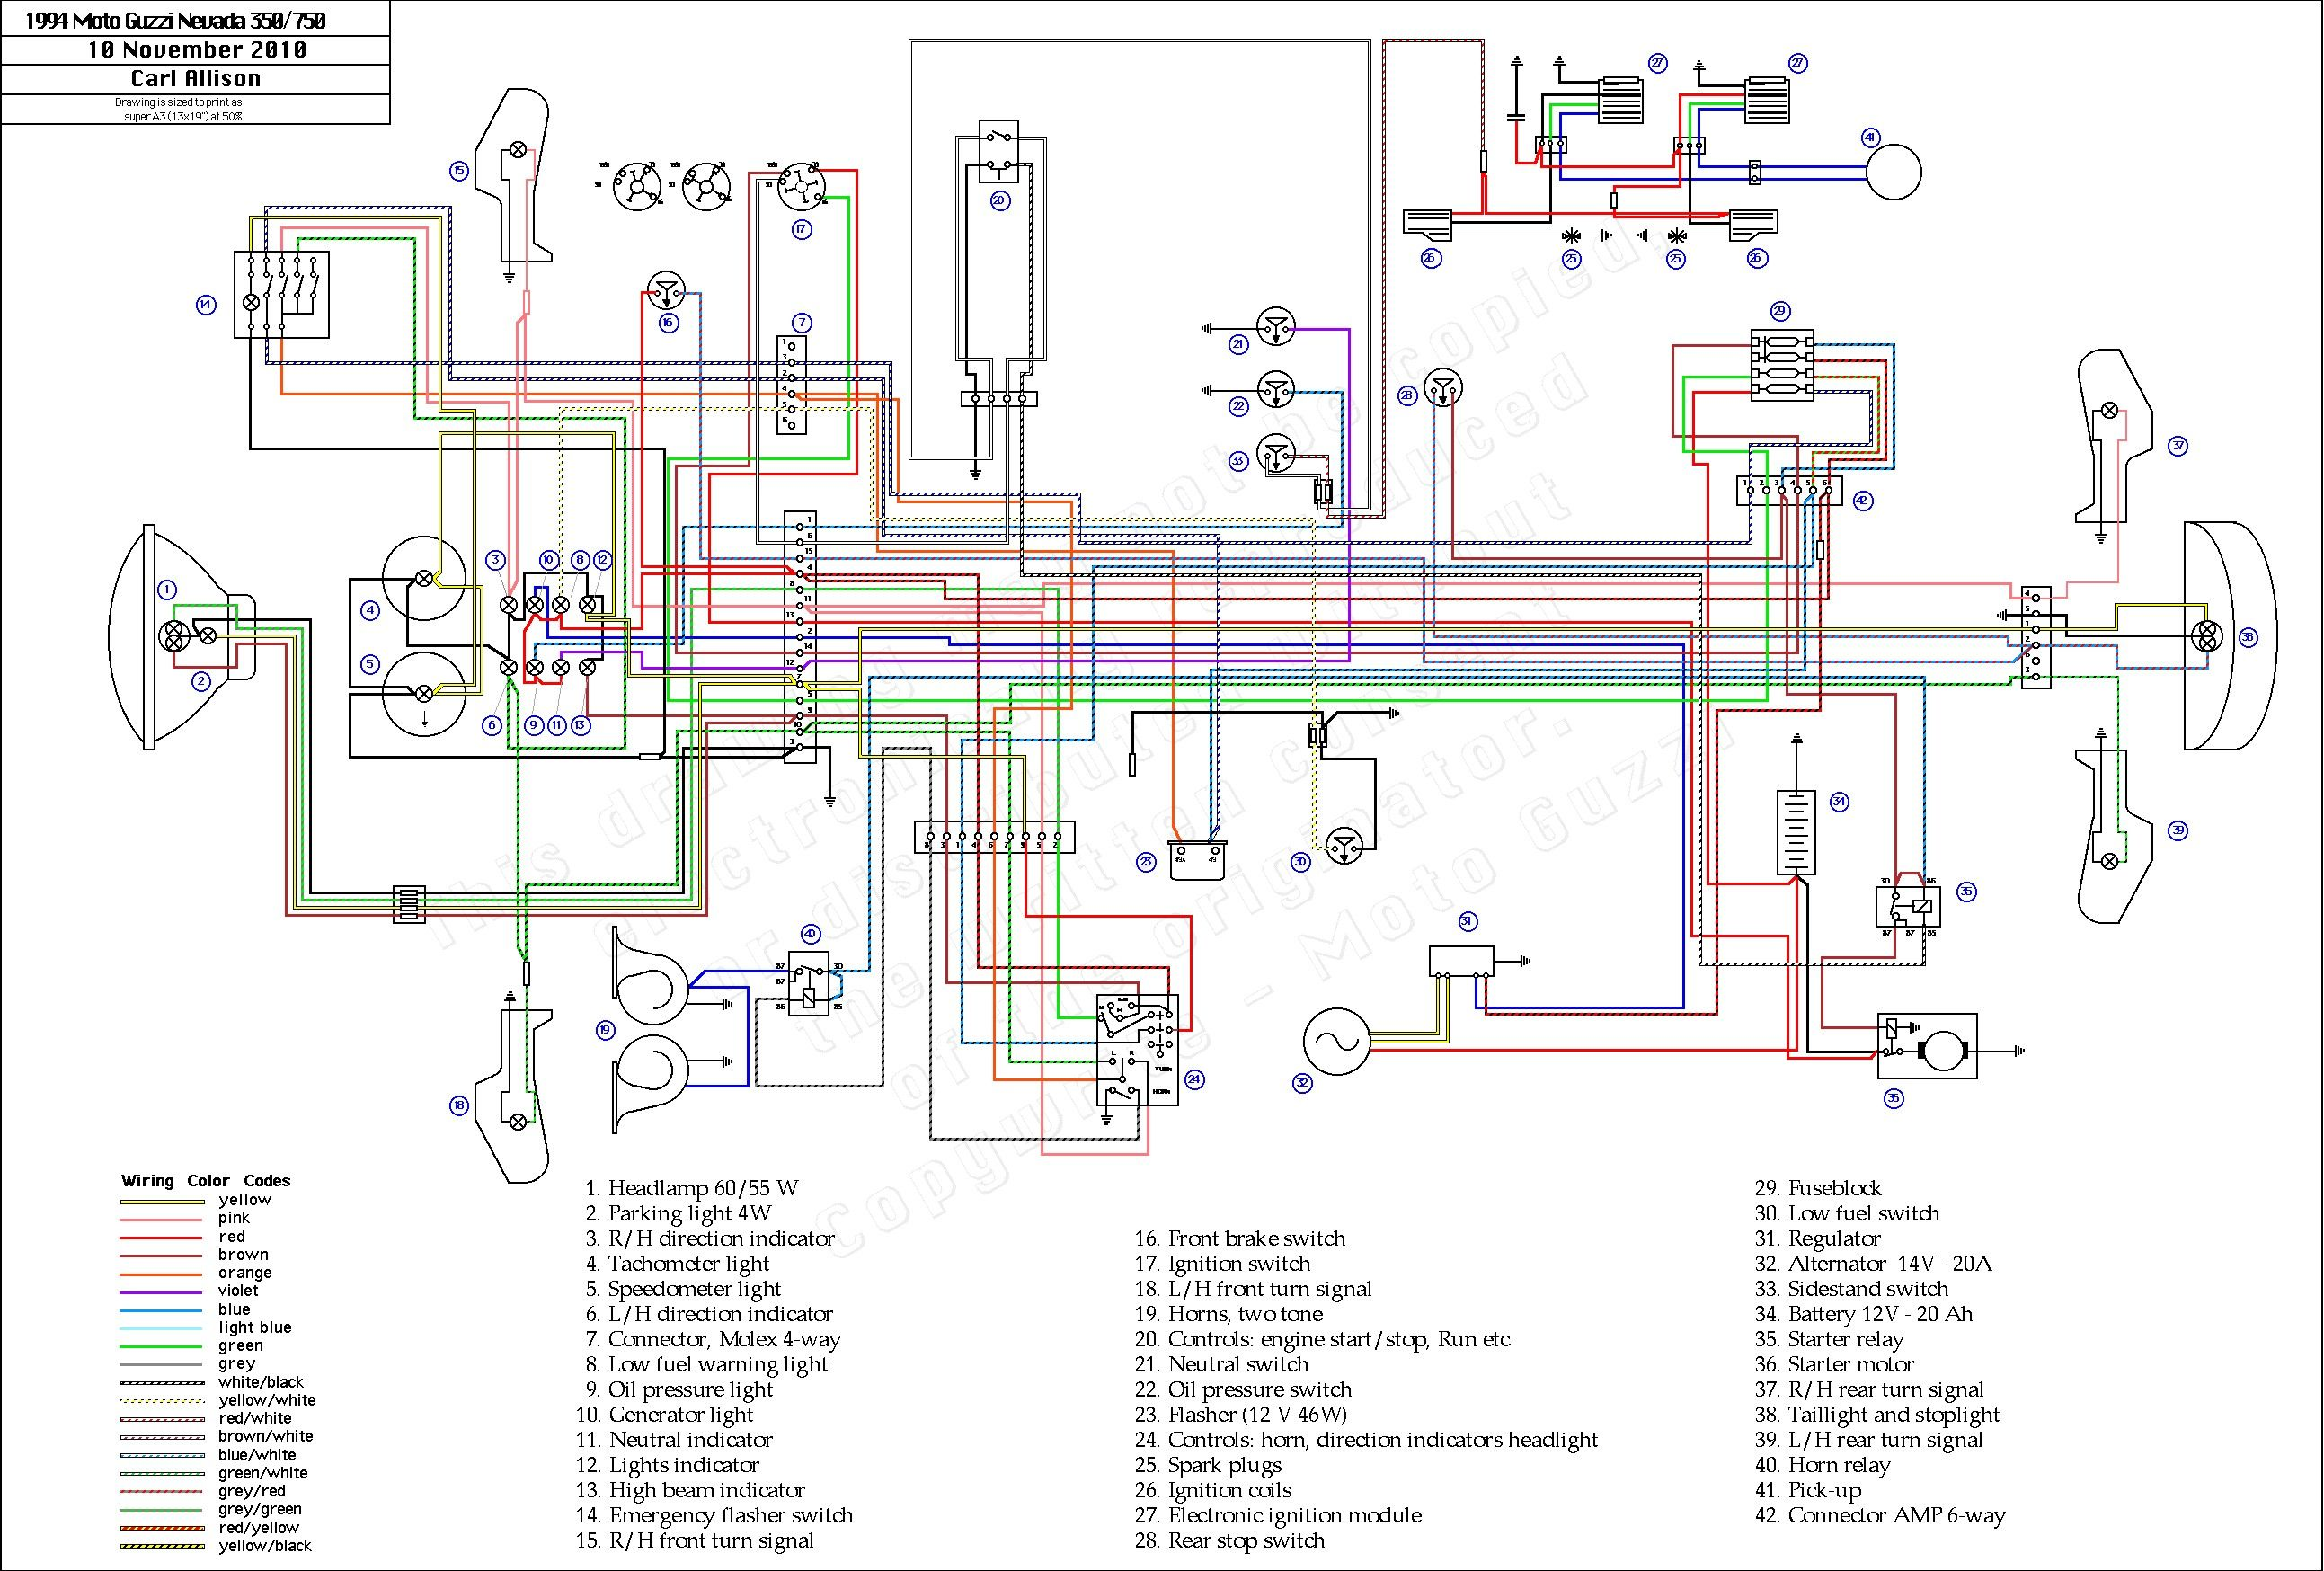 1989 Yamaha Motorcycle Wiring Diagram from i.pinimg.com